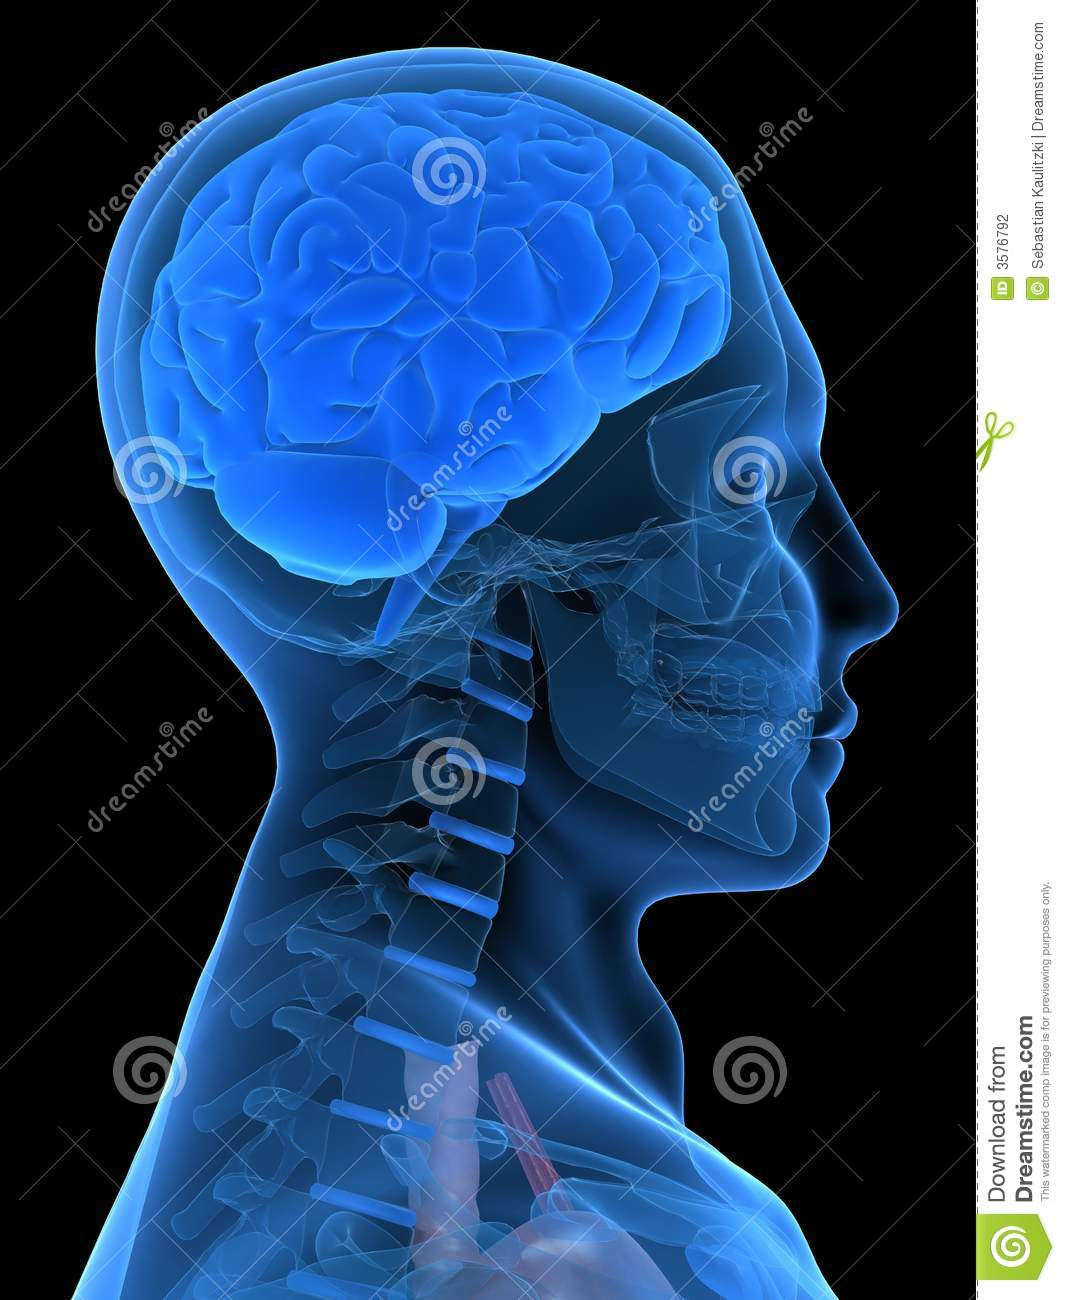 156 Hs12 Intradermal Injection Arm together with Anatomy Of The Eye 405086 01xr likewise Finished further Blood Vessel Eruption In Brain together with Royalty Free Stock Images Damaged Healthy Myelin Sheaths Image27231989. on brain in circulatory system